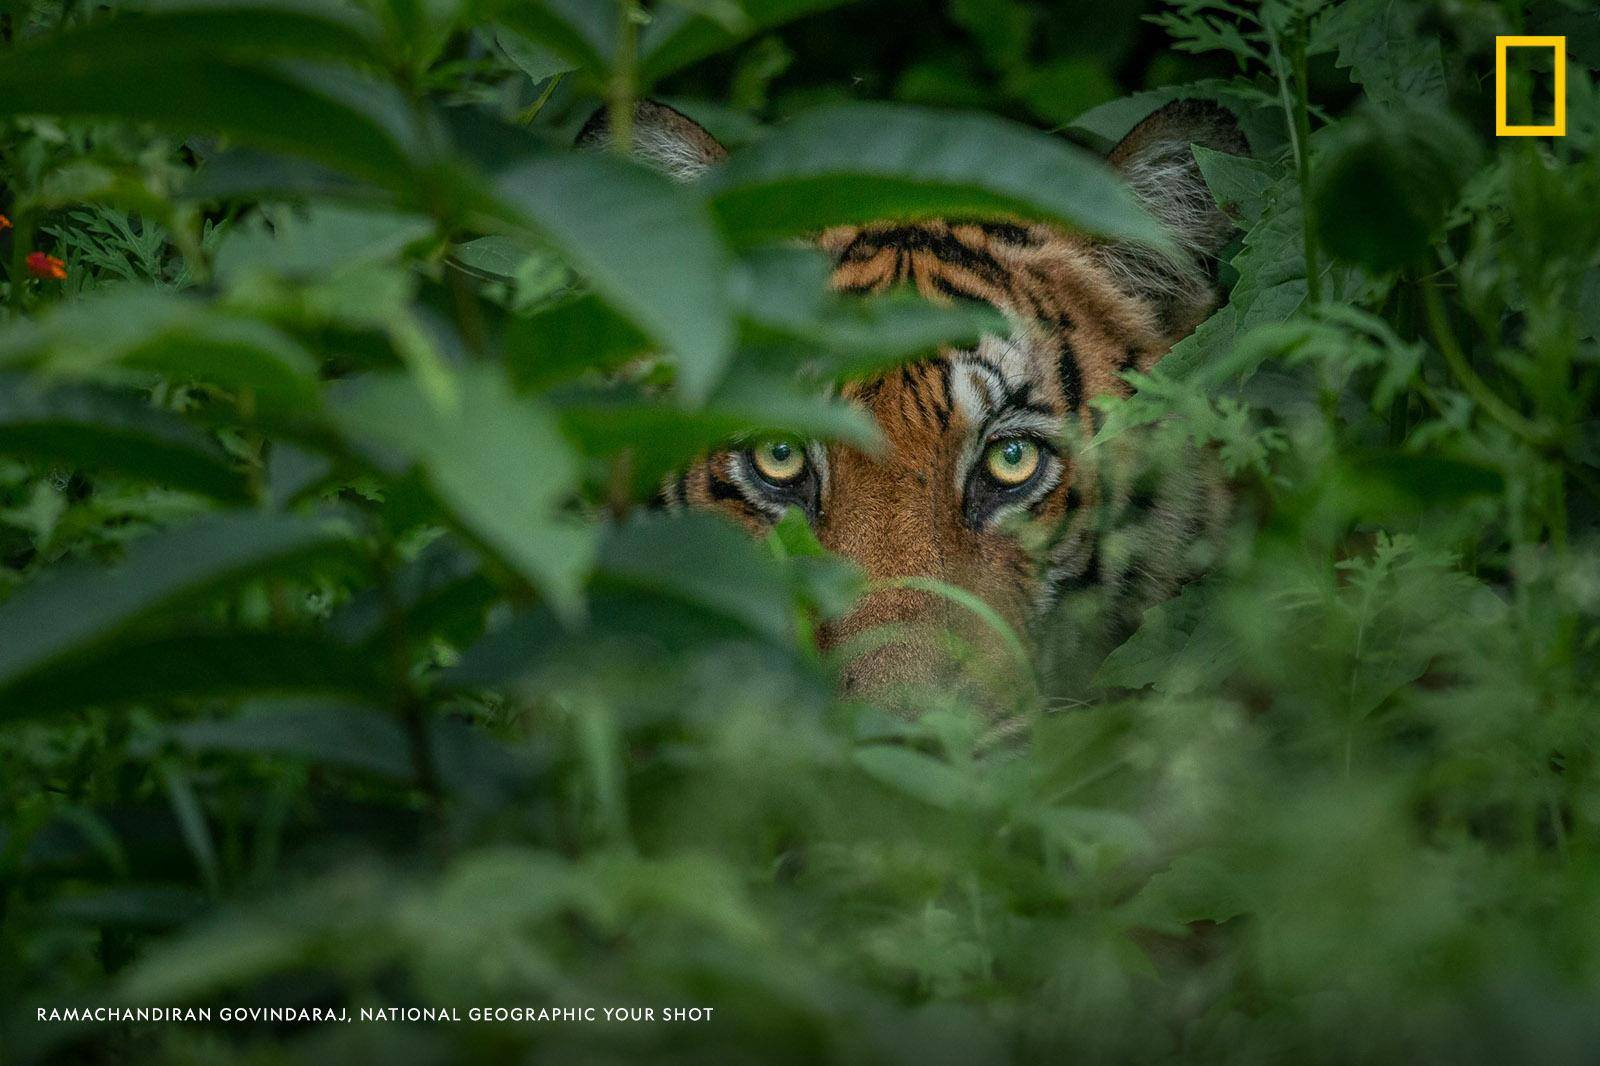 The yellow eyes of a watchful tiger peek through the leaves in this inspiring photo captured by Your Shot photographer Ramachandiran Govindaraj. https://on.natgeo.com/2DTi5Kh